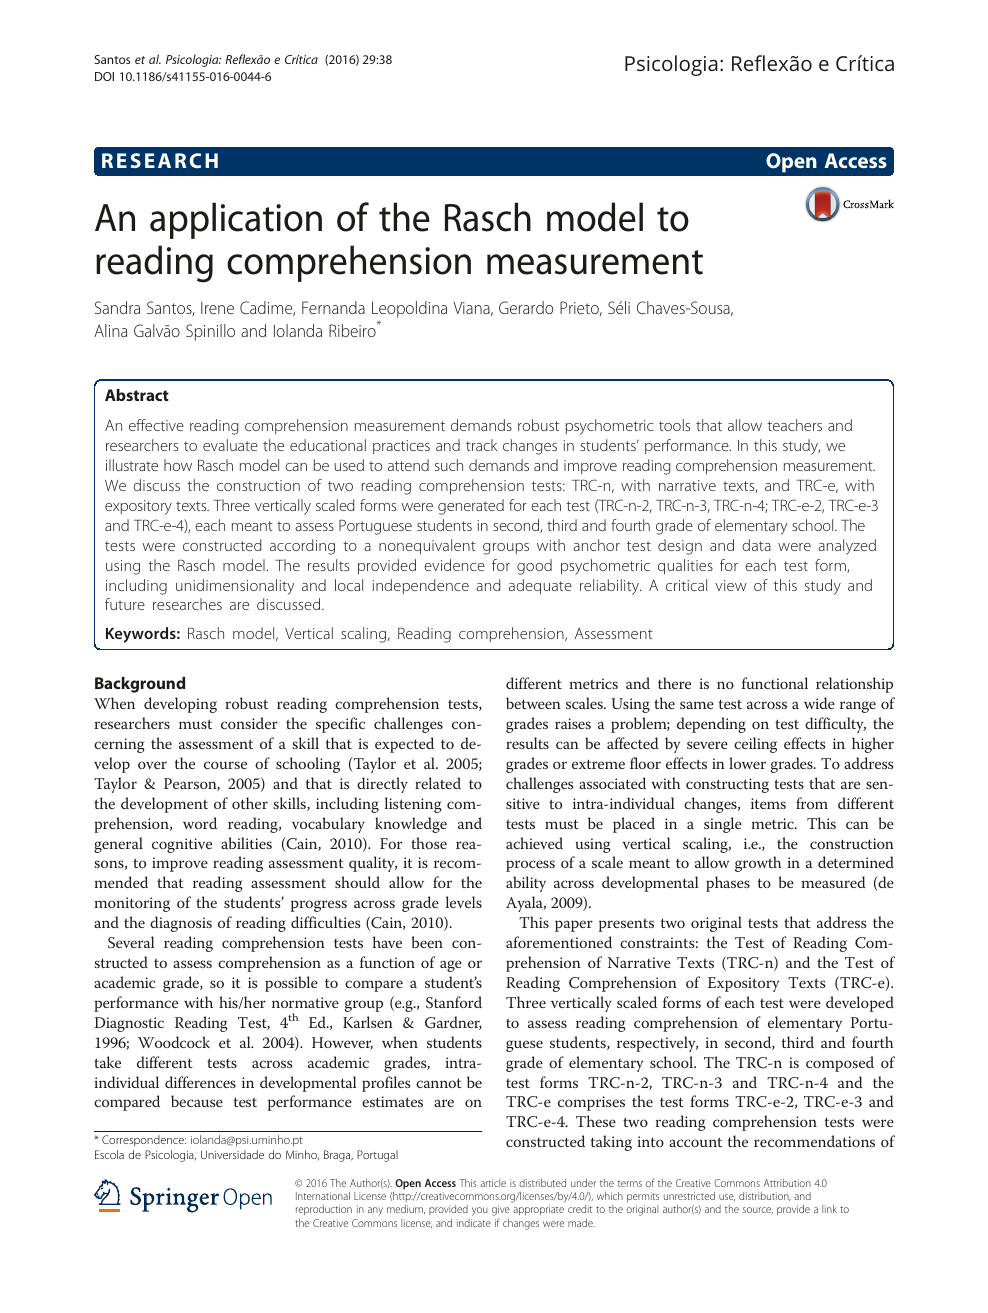 - An Application Of The Rasch Model To Reading Comprehension